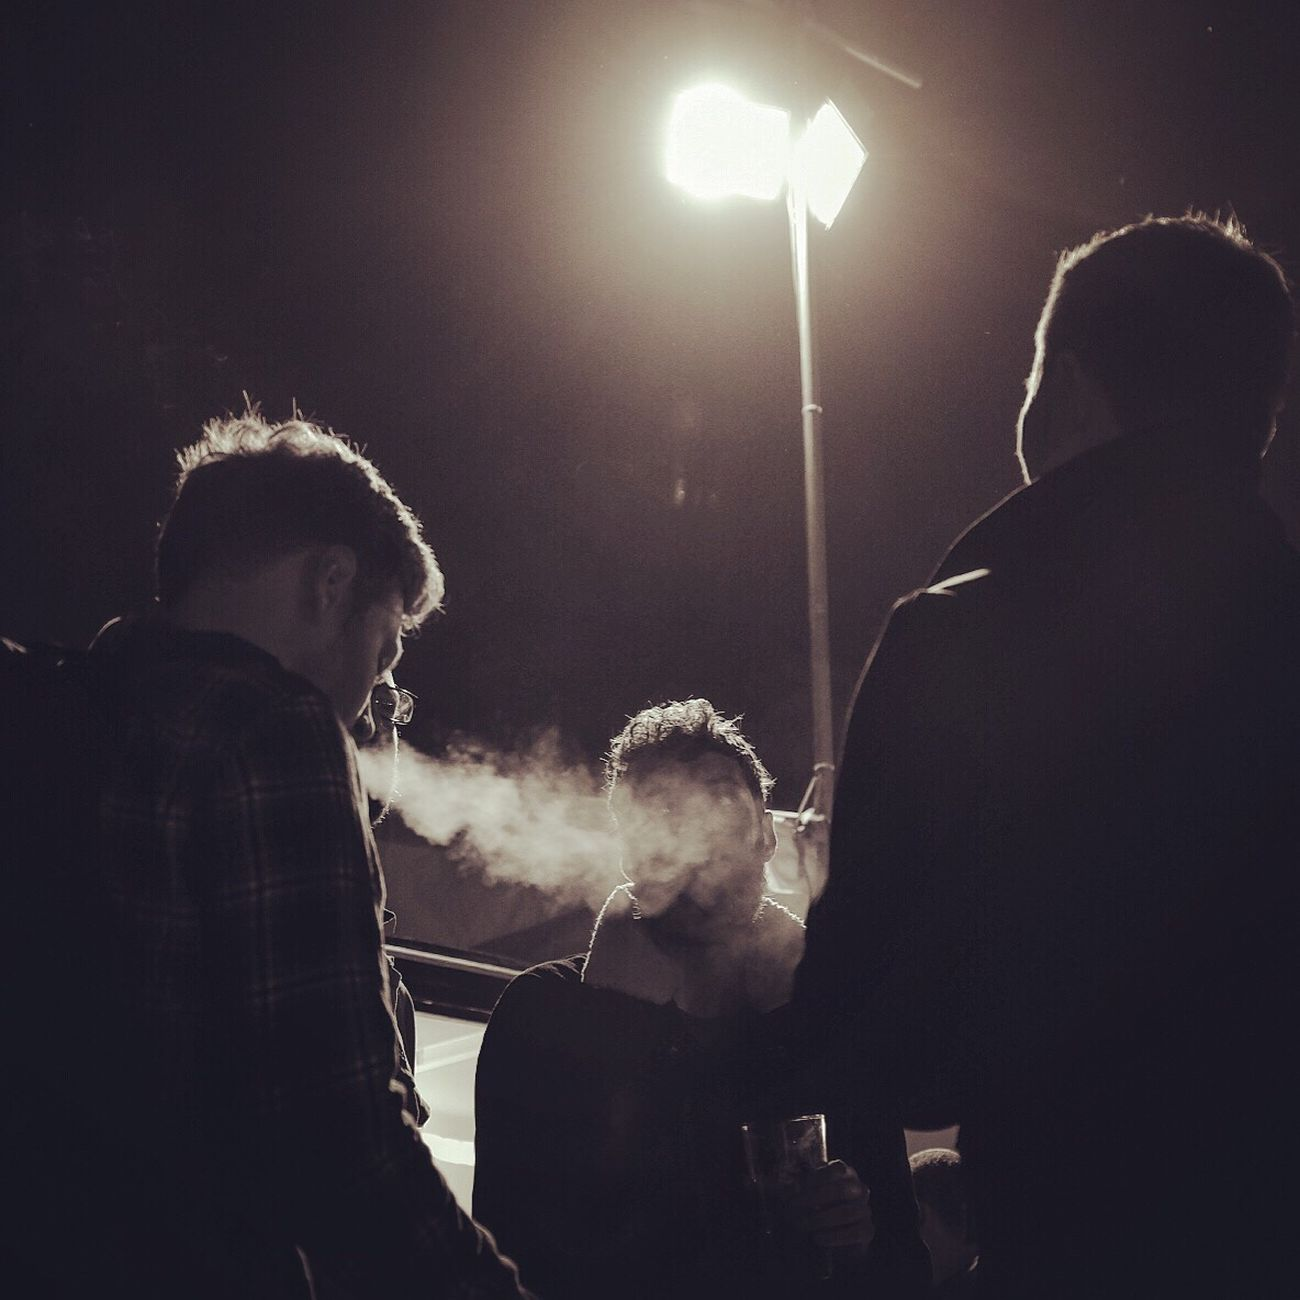 Late evening at Cambridgebeerfestival Smoke Vape Silhouette Candid Photography Sliceoflife Inthemoment Blackandwhite Photography